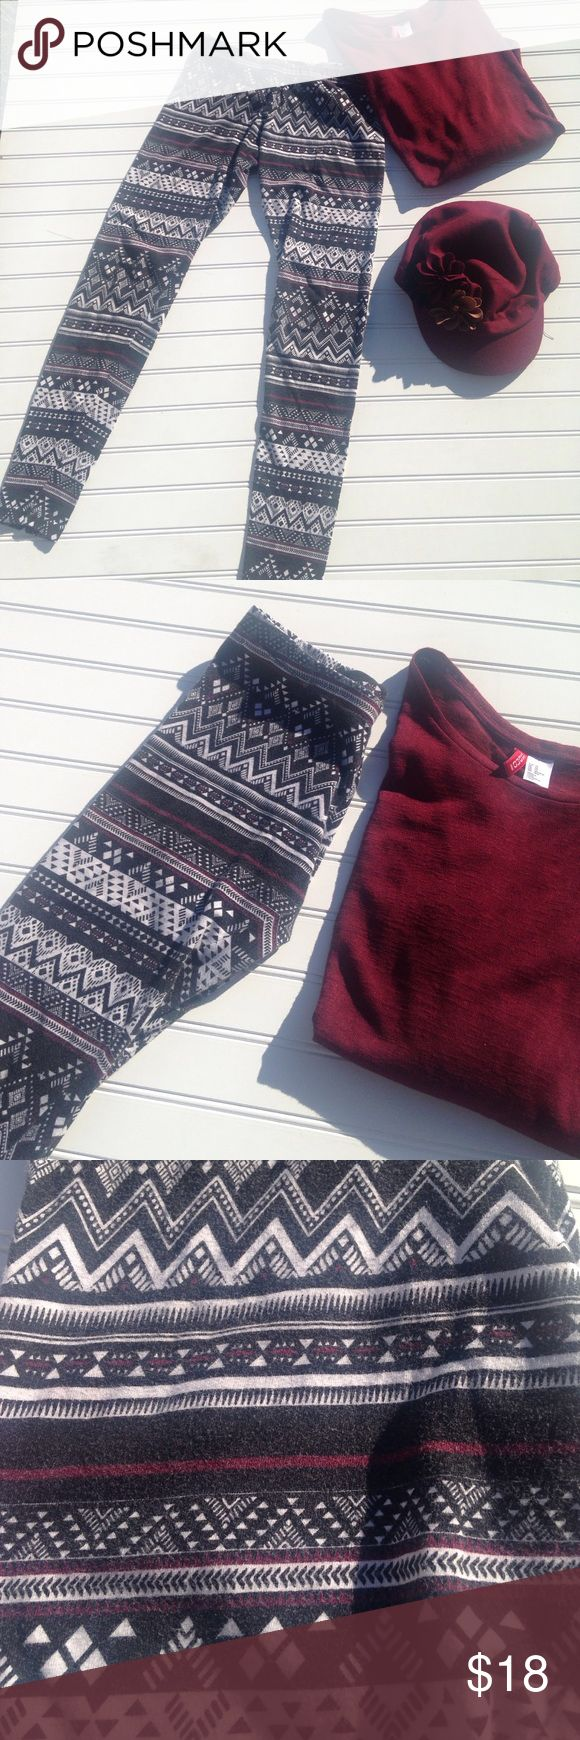 "Fall Leggings Full Tilt Full Tilt Fall Leggings, Approx measurements 13"" elastic waist & 32"" length. Black , white, Burgundy cotton soft design. Size XS. Full Tilt Pants Leggings"